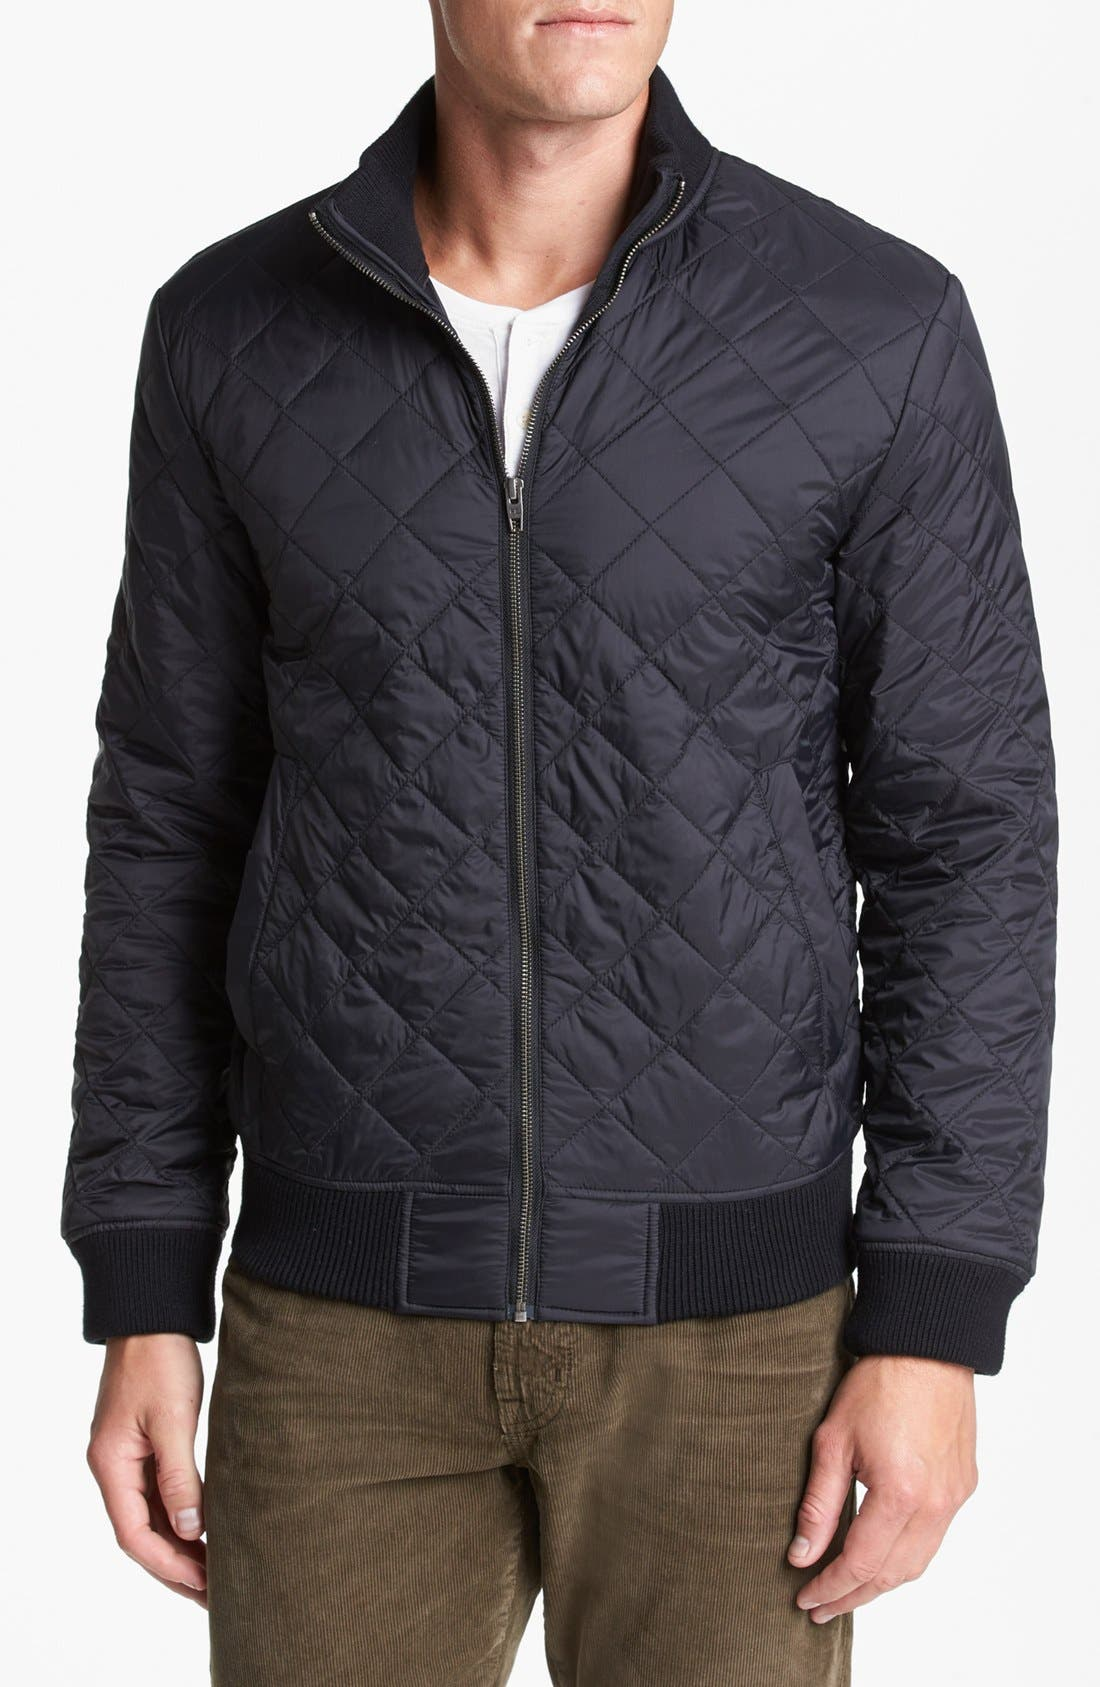 Alternate Image 1 Selected - French Connection 'Marine' Quilted Jacket